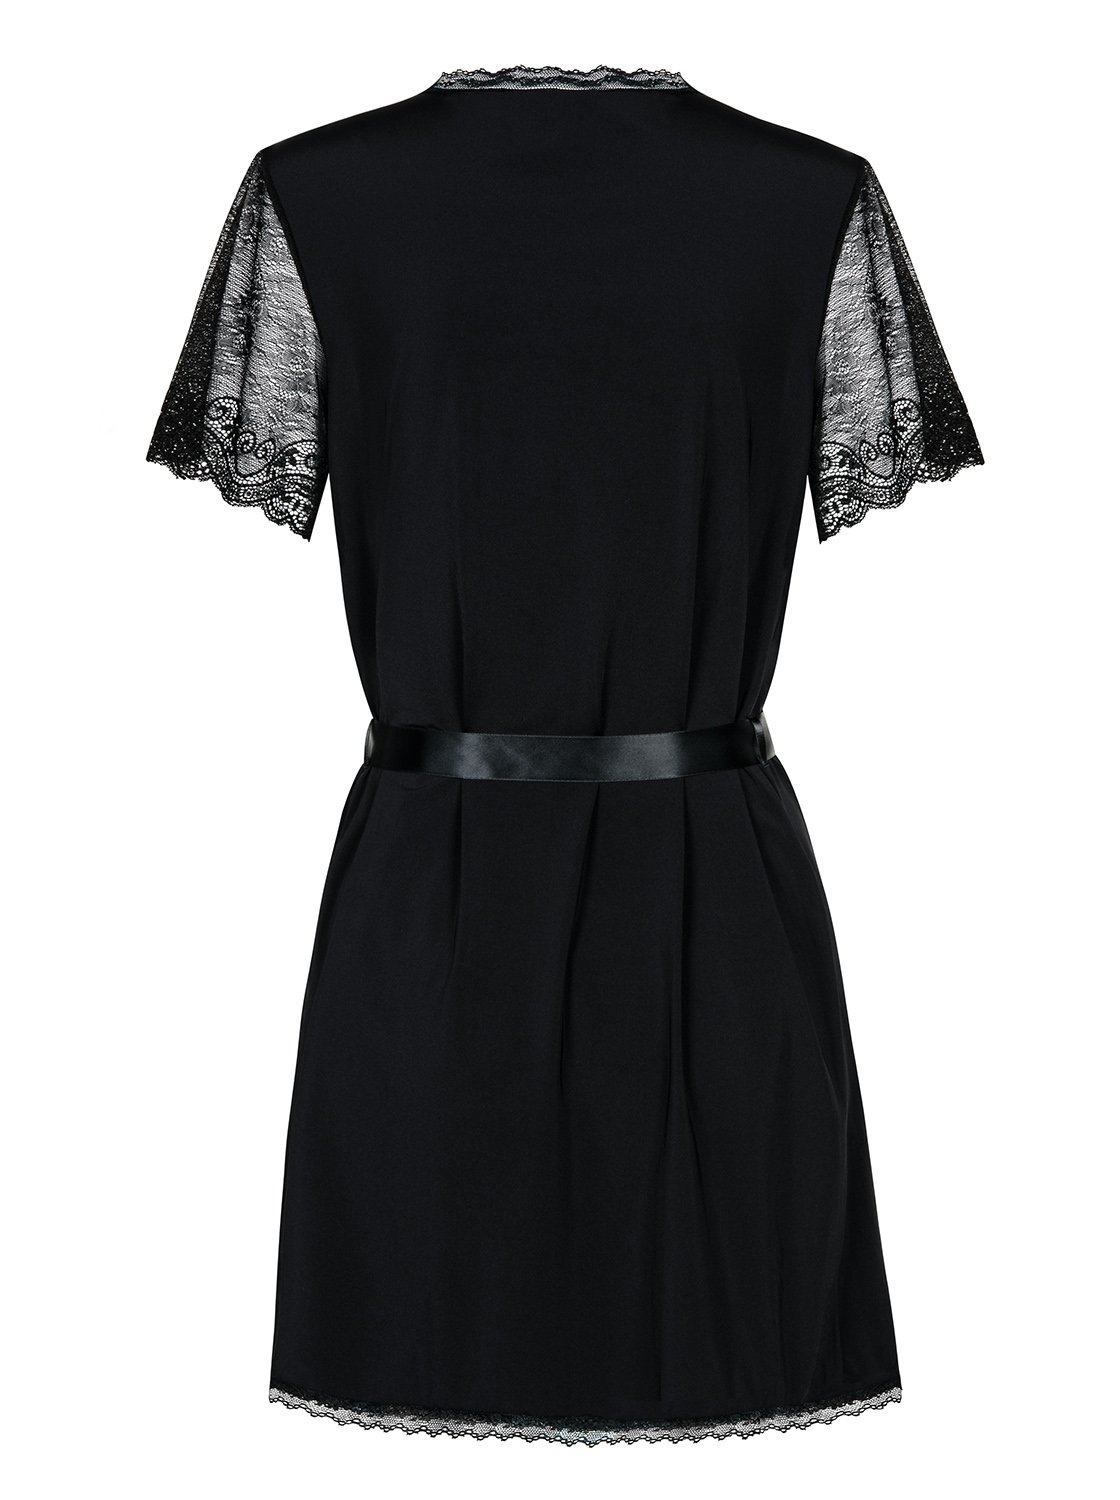 Пеньюар Obsessive Satinia robe Black, размер S/M